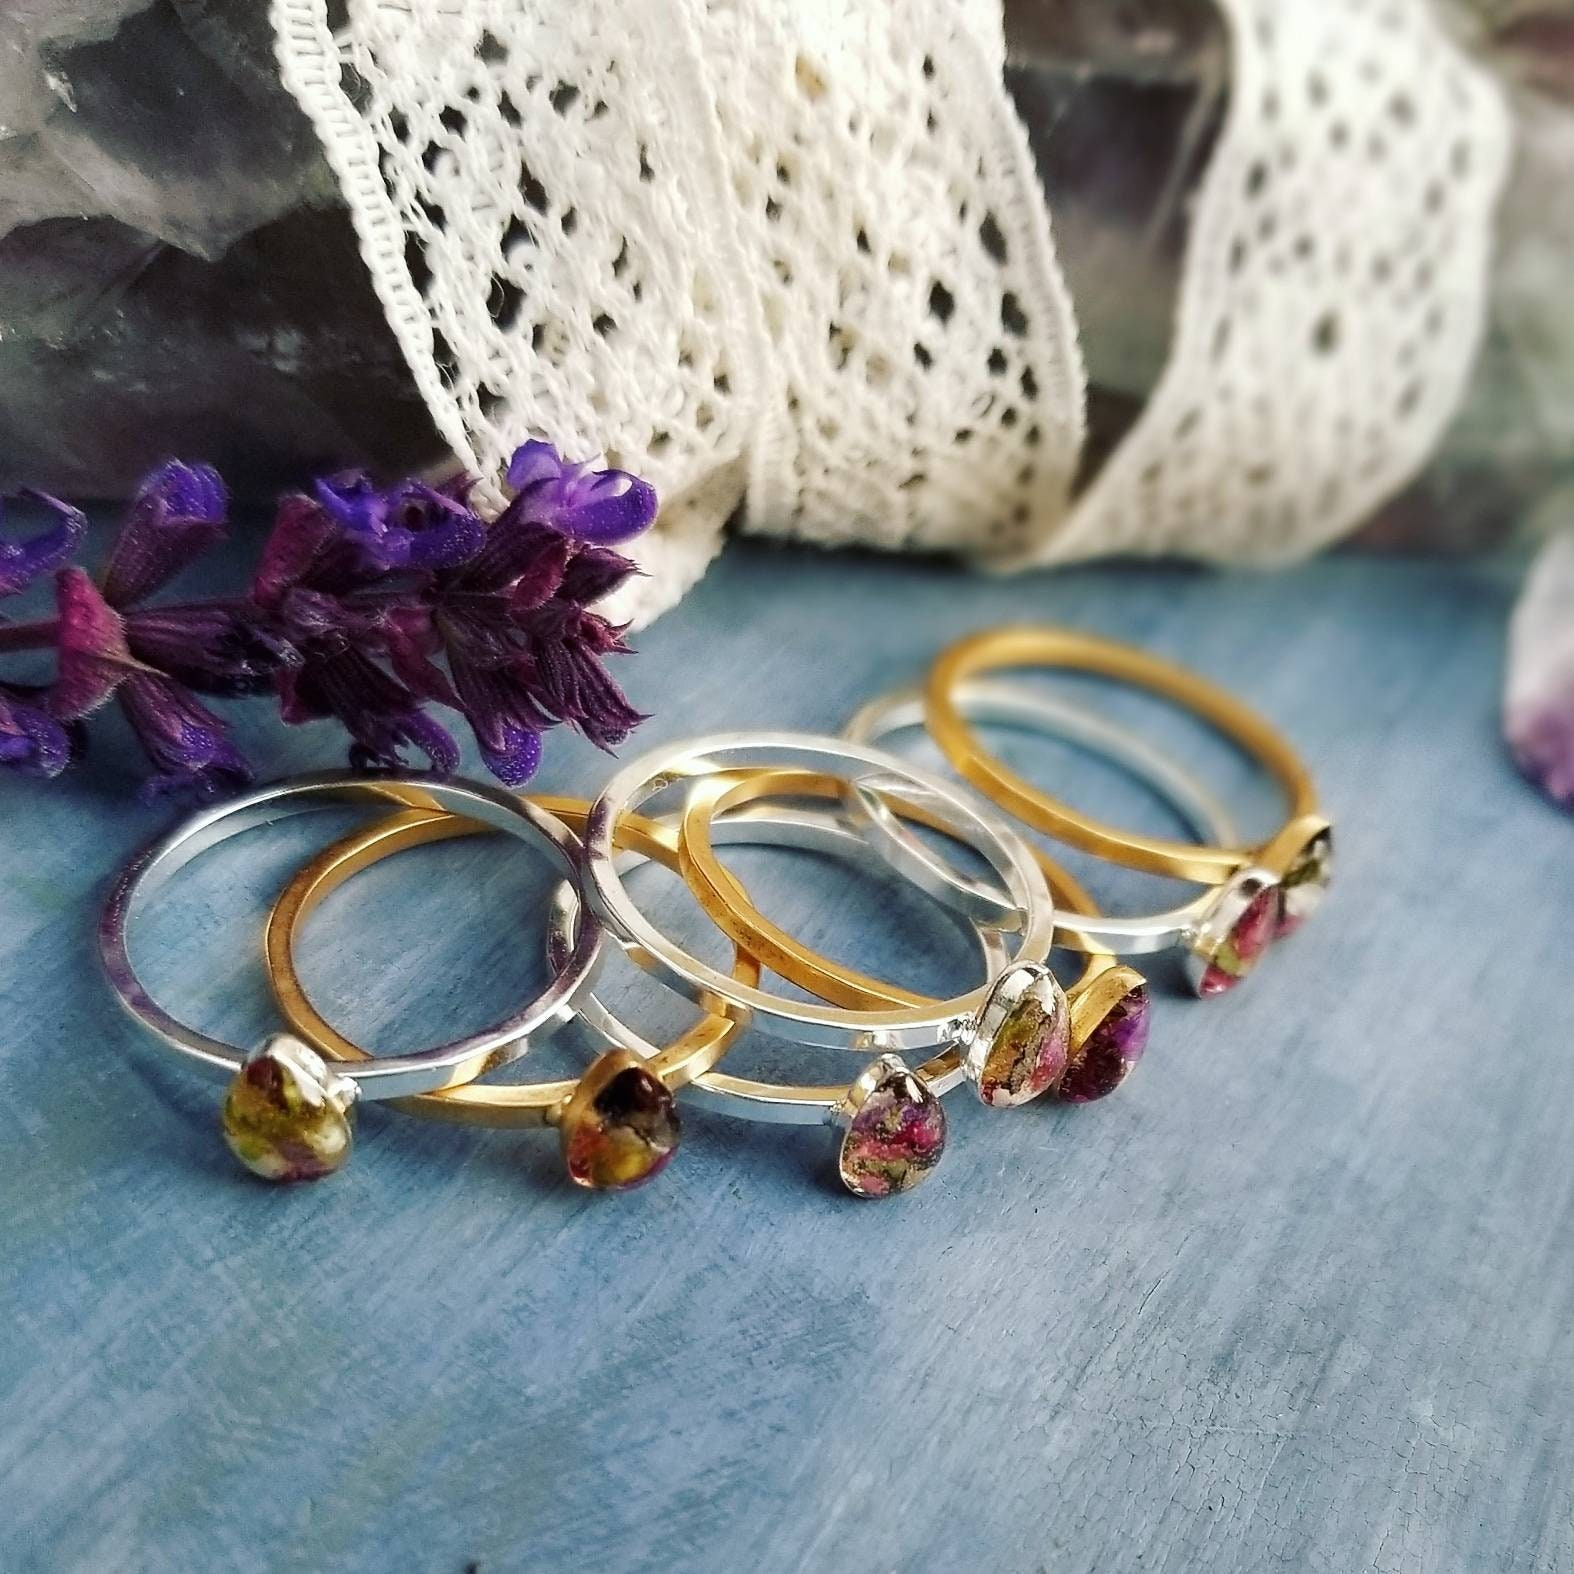 Resin Art Stacking Ring Size 9 Botanical Magic Ring 24k Gold or Sterling Silver Size 9 Herbs and Flowers